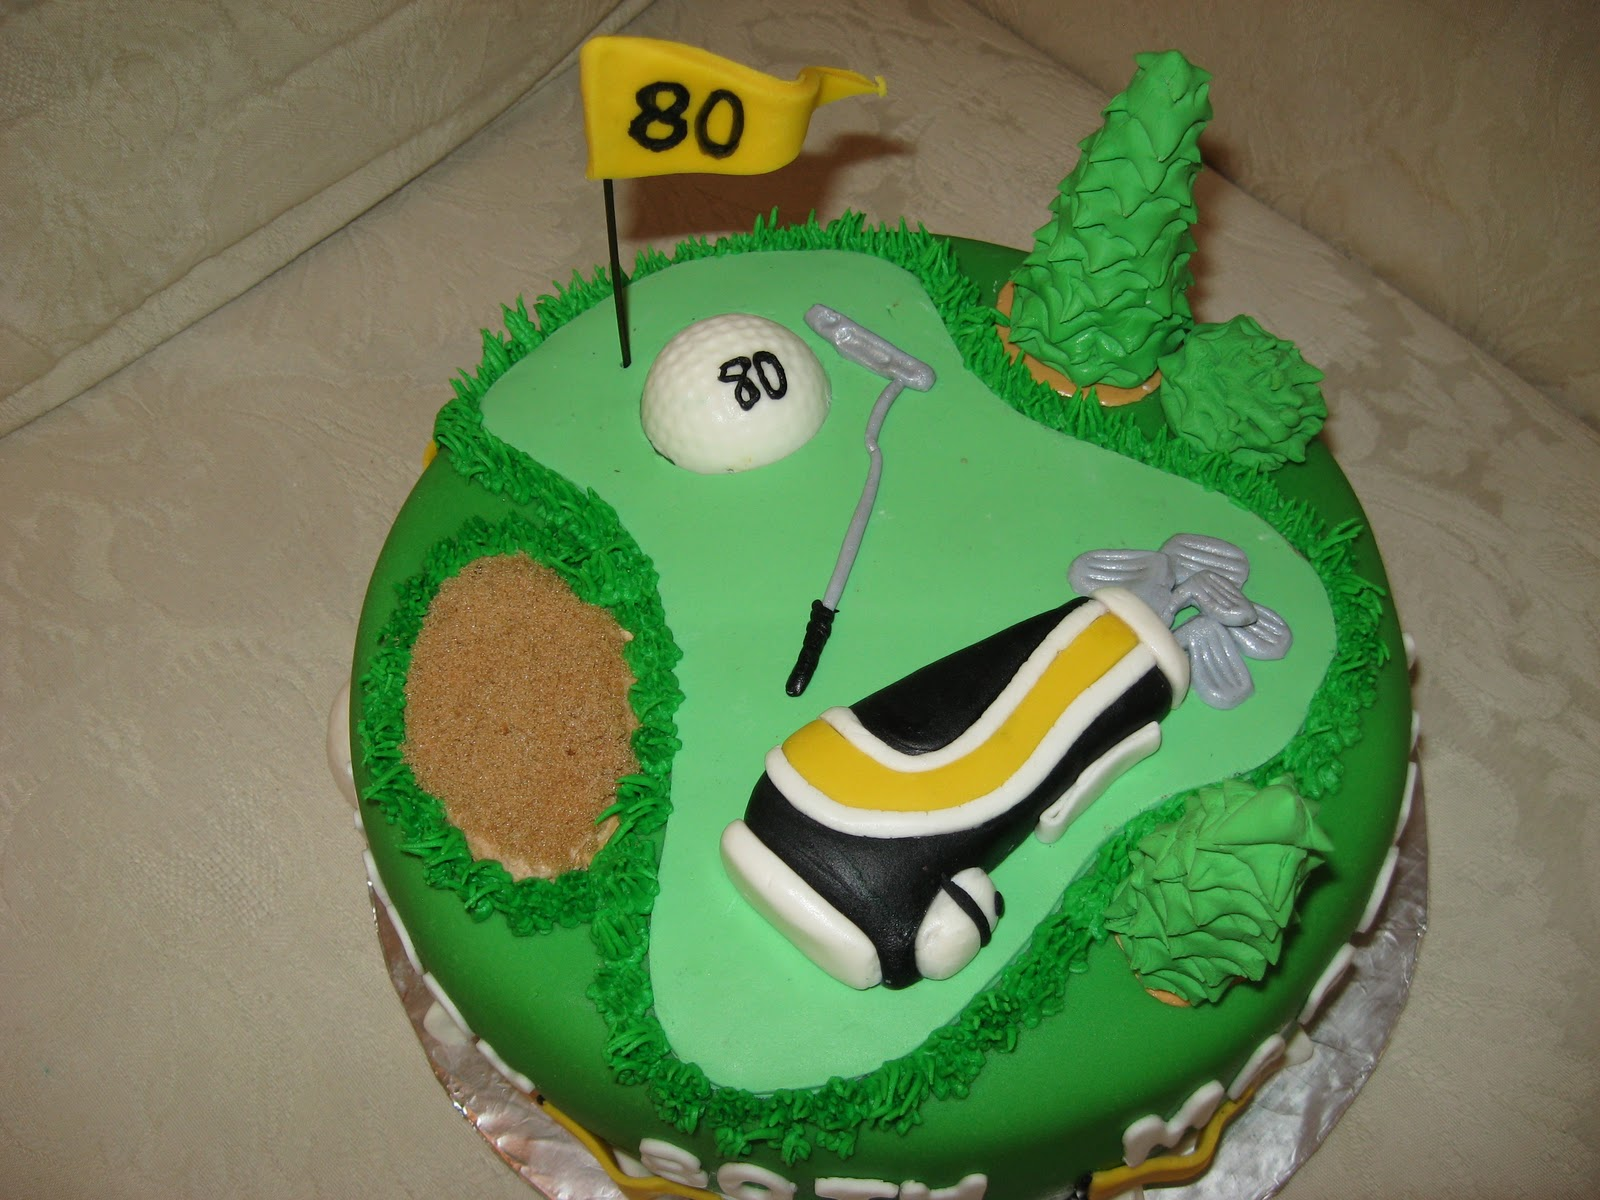 Cake Images Golf : 2 years ago Short URL